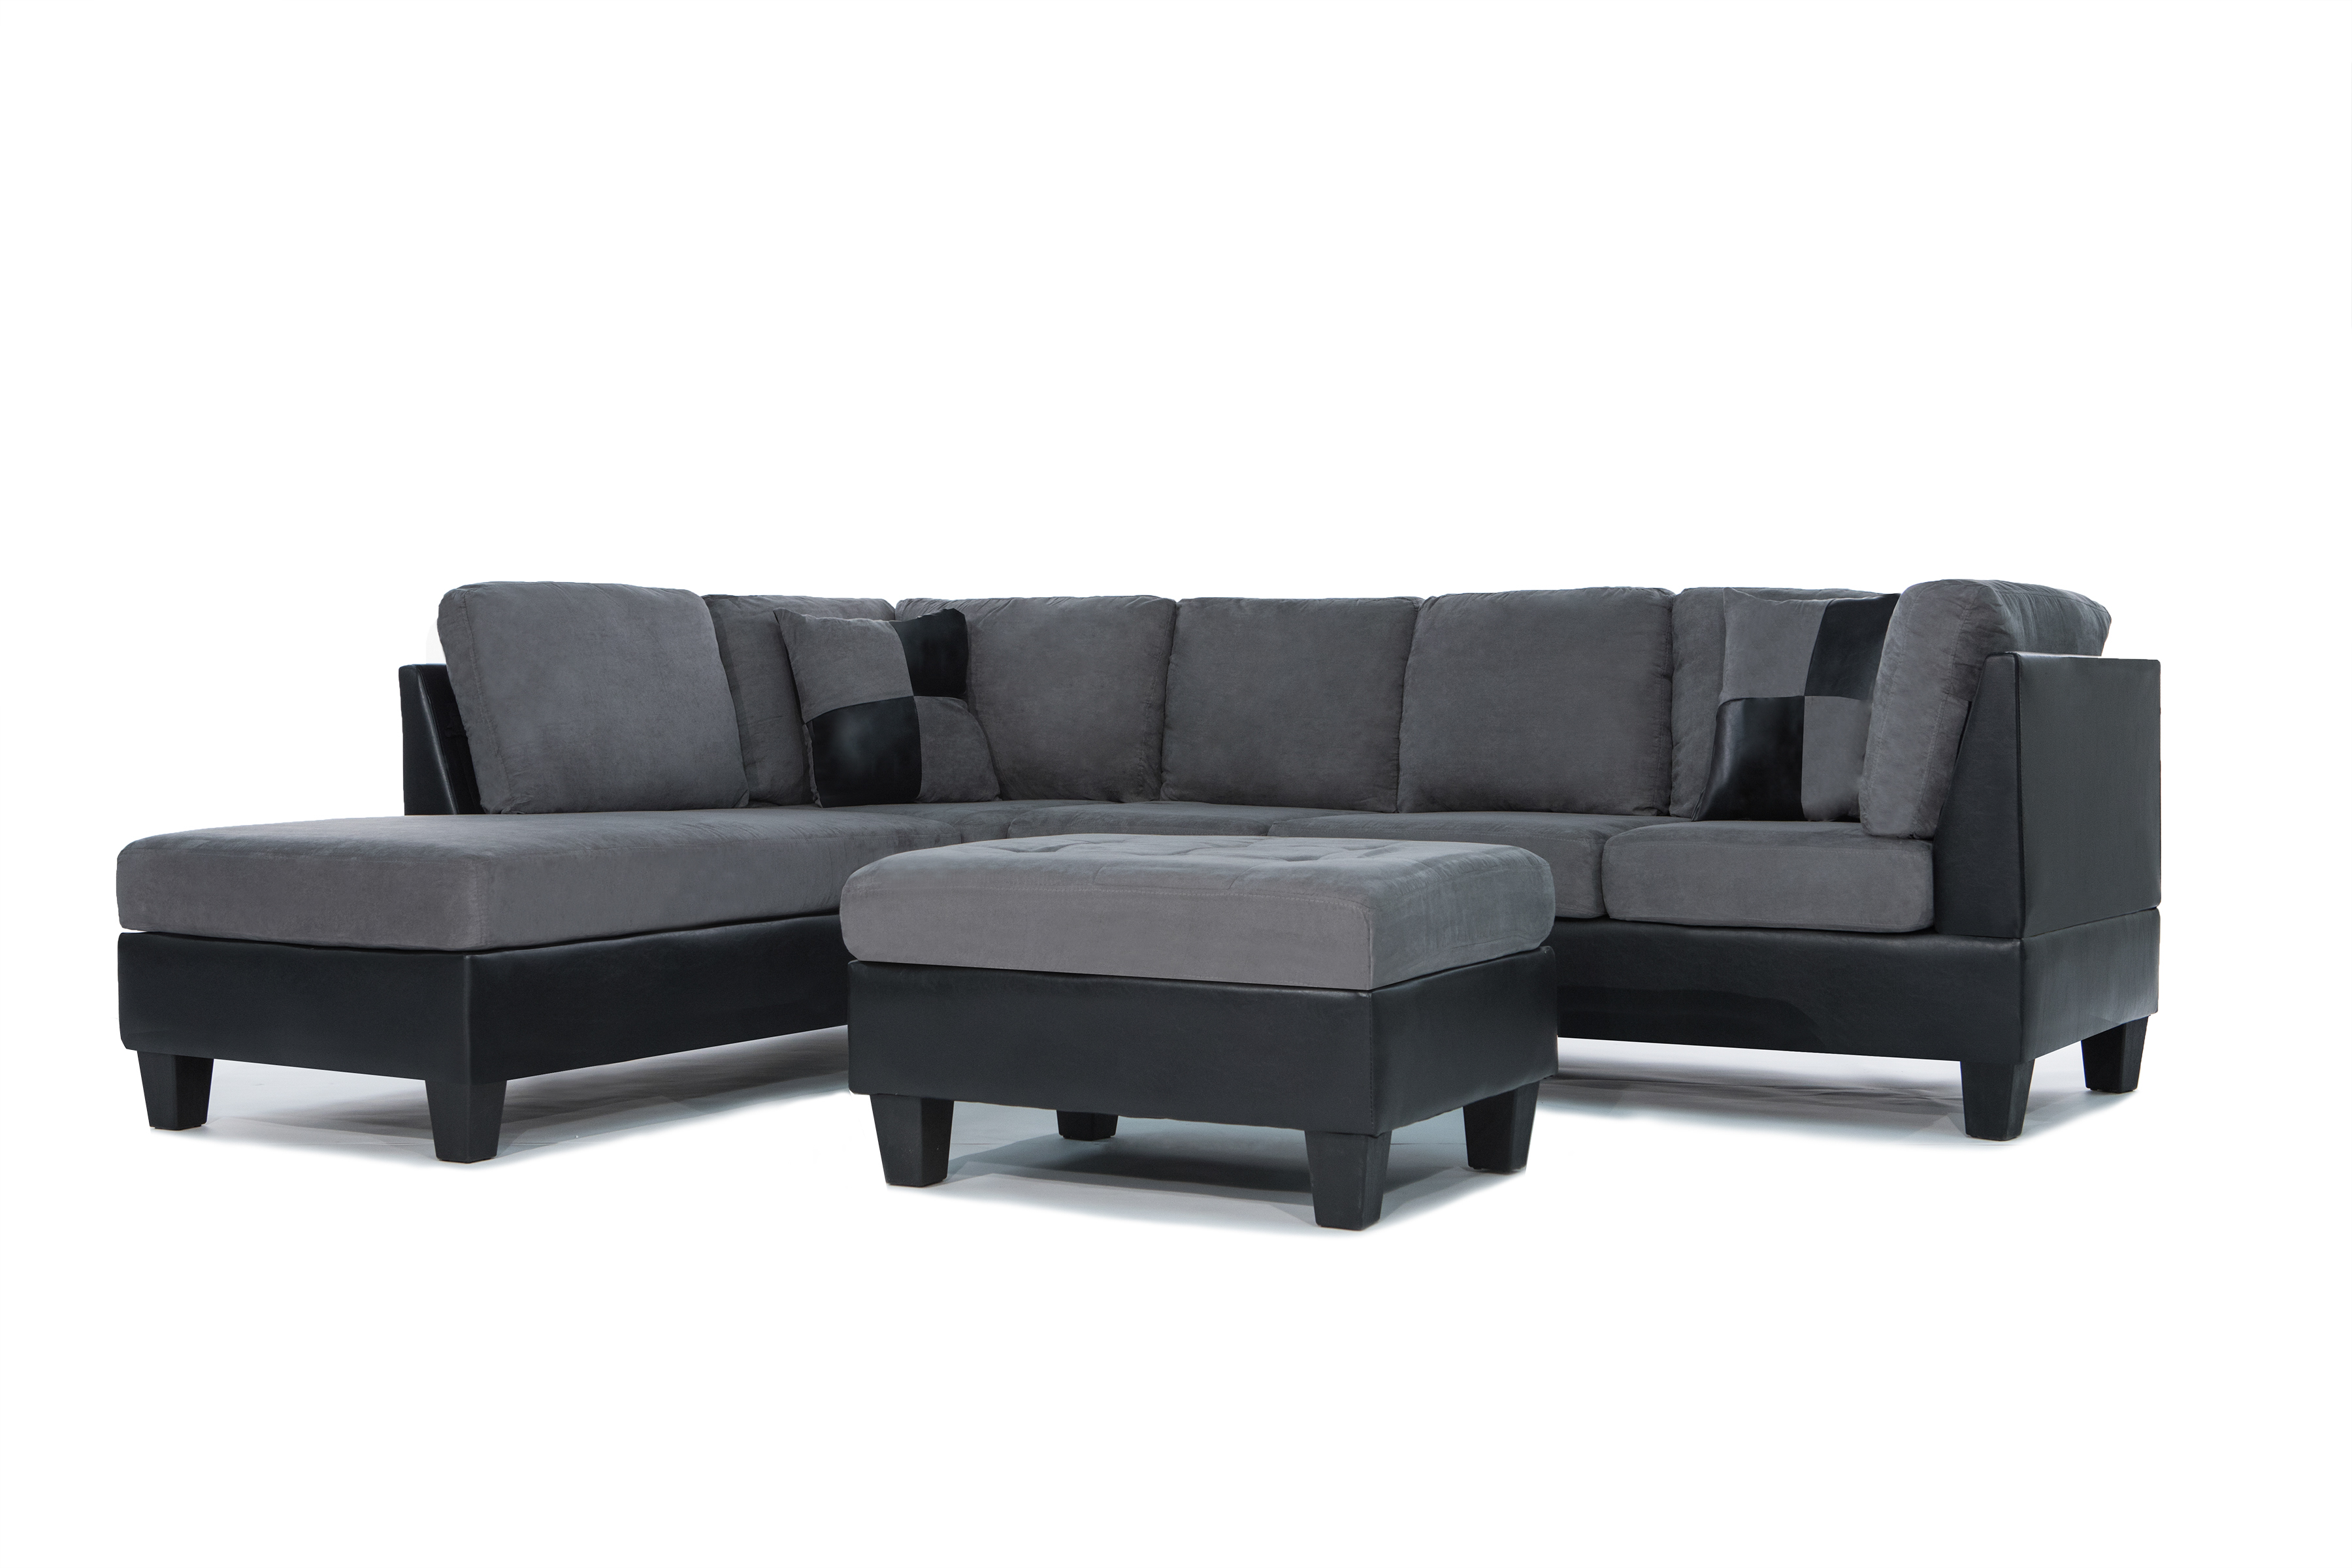 3 Piece Modern Soft Reversible Microfiber and Faux Leather Sectional Sofa with...